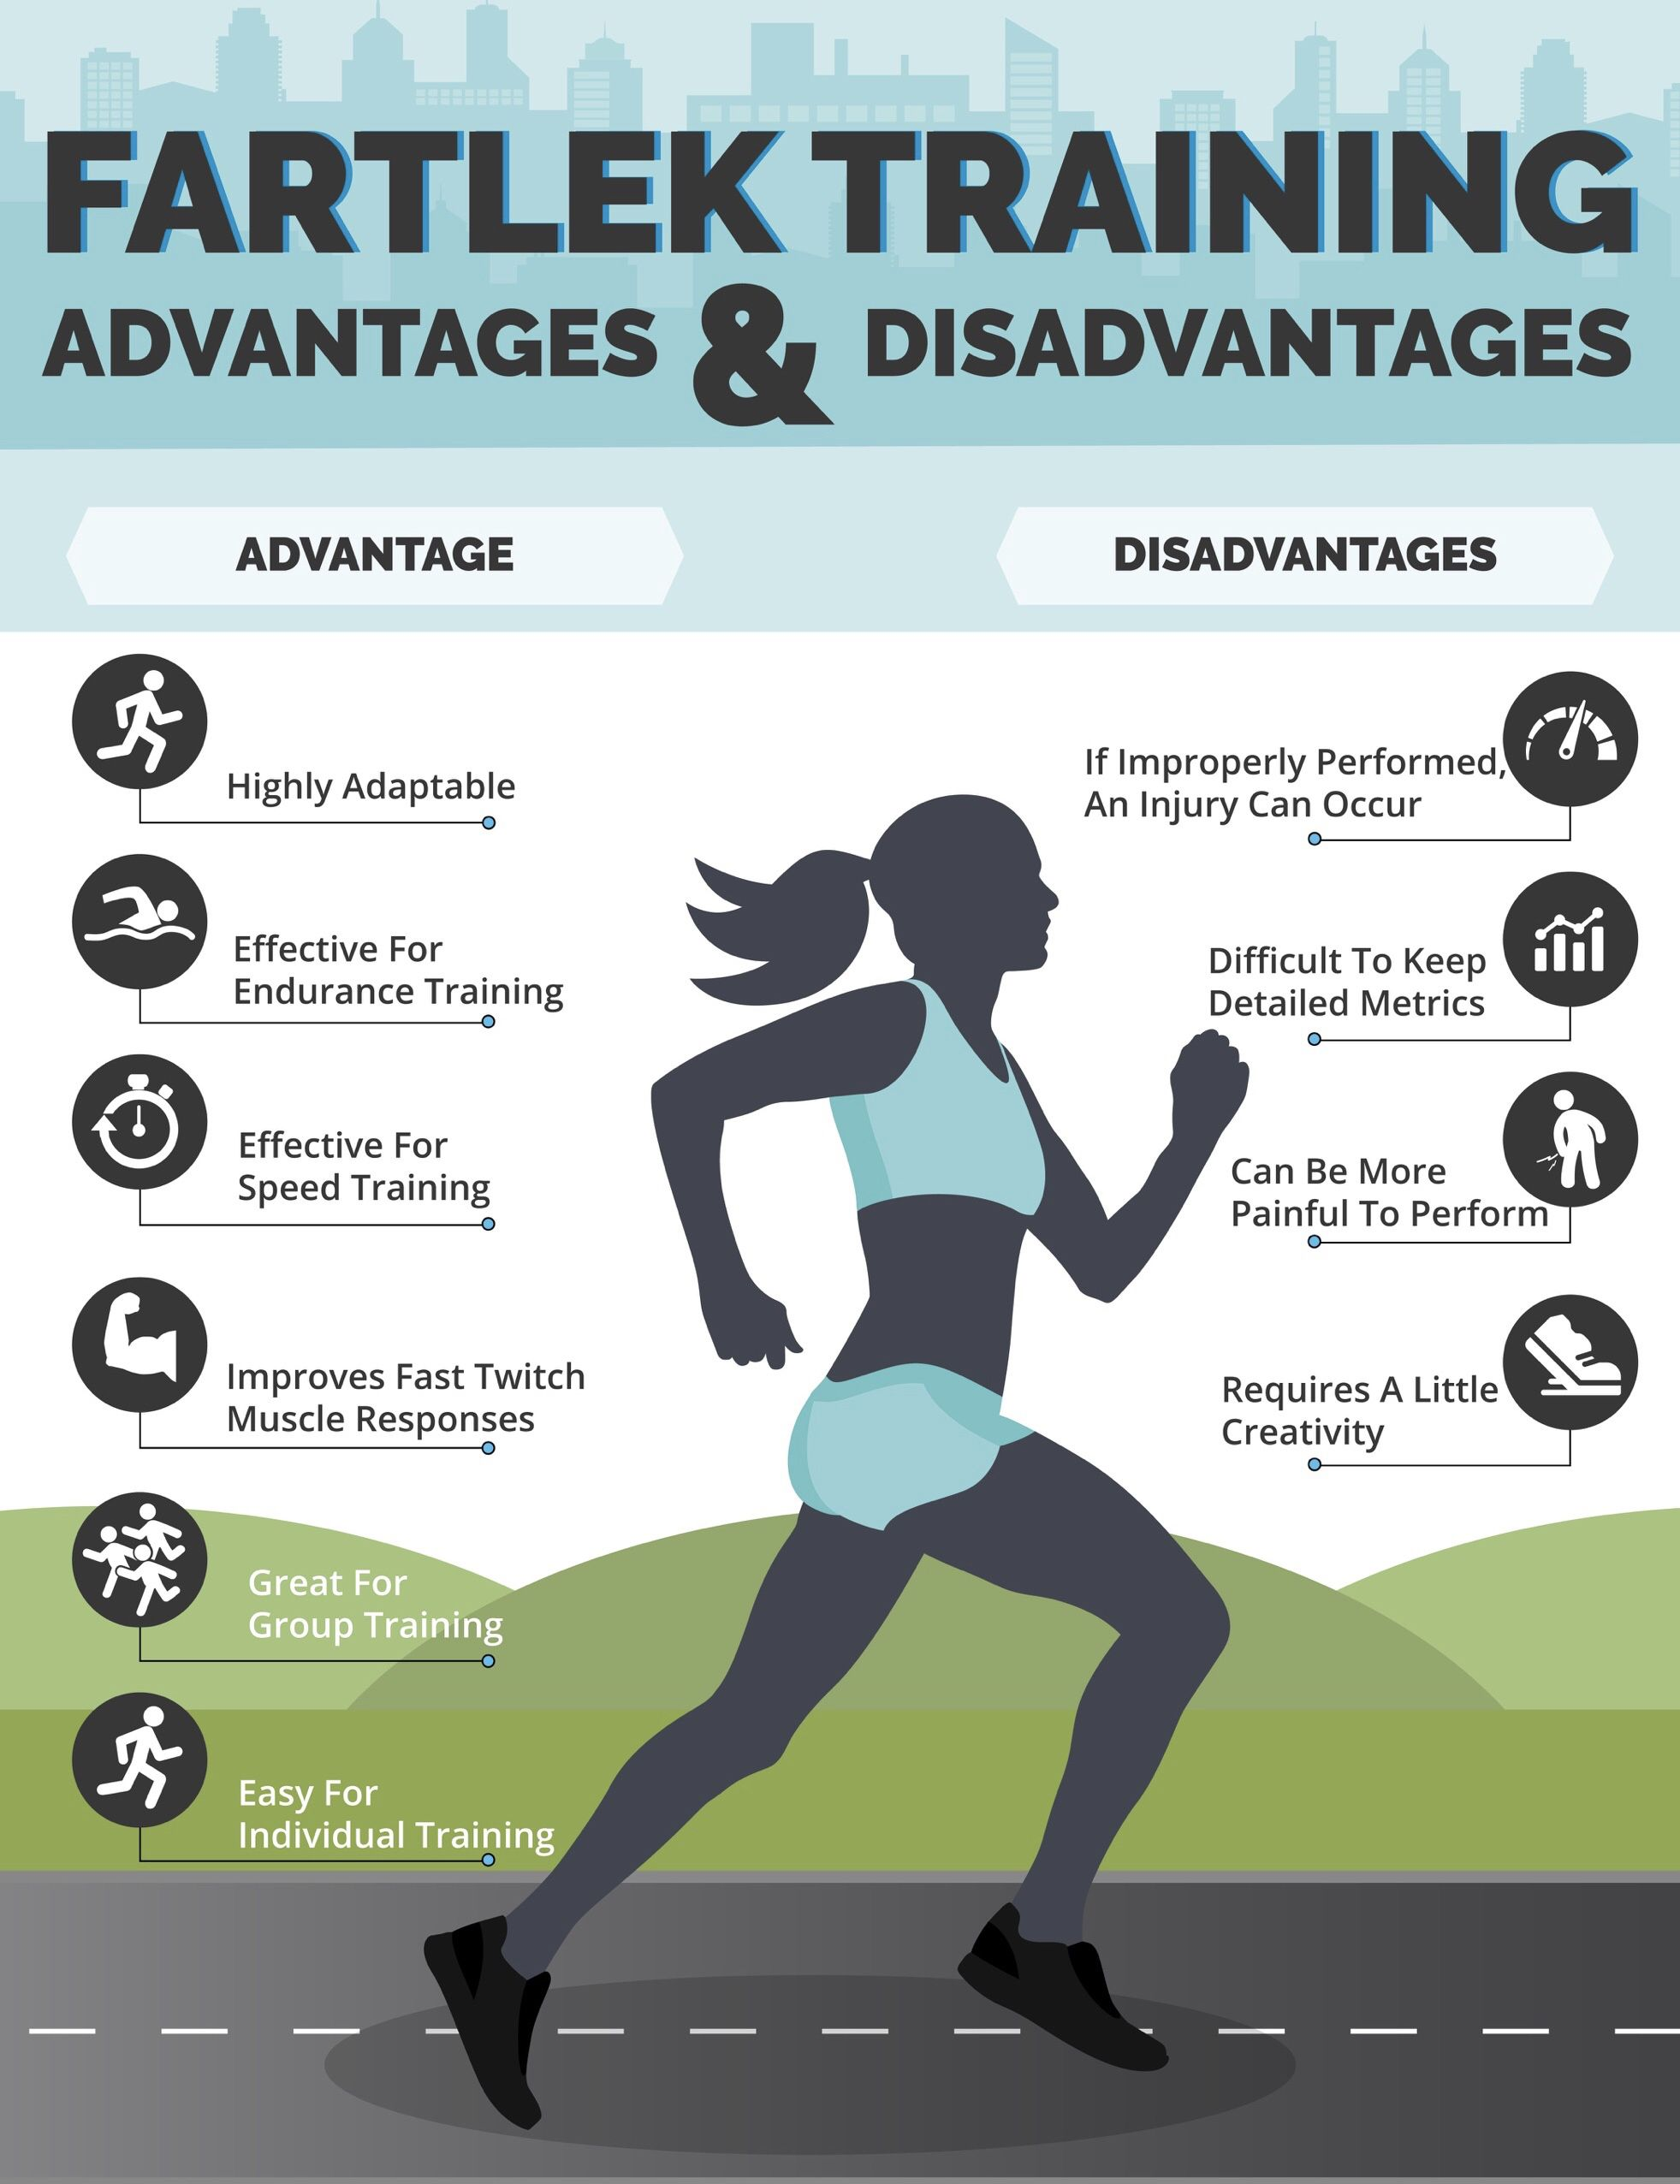 11 Fartlek Training Advantages And Disadvantages Workout Guide